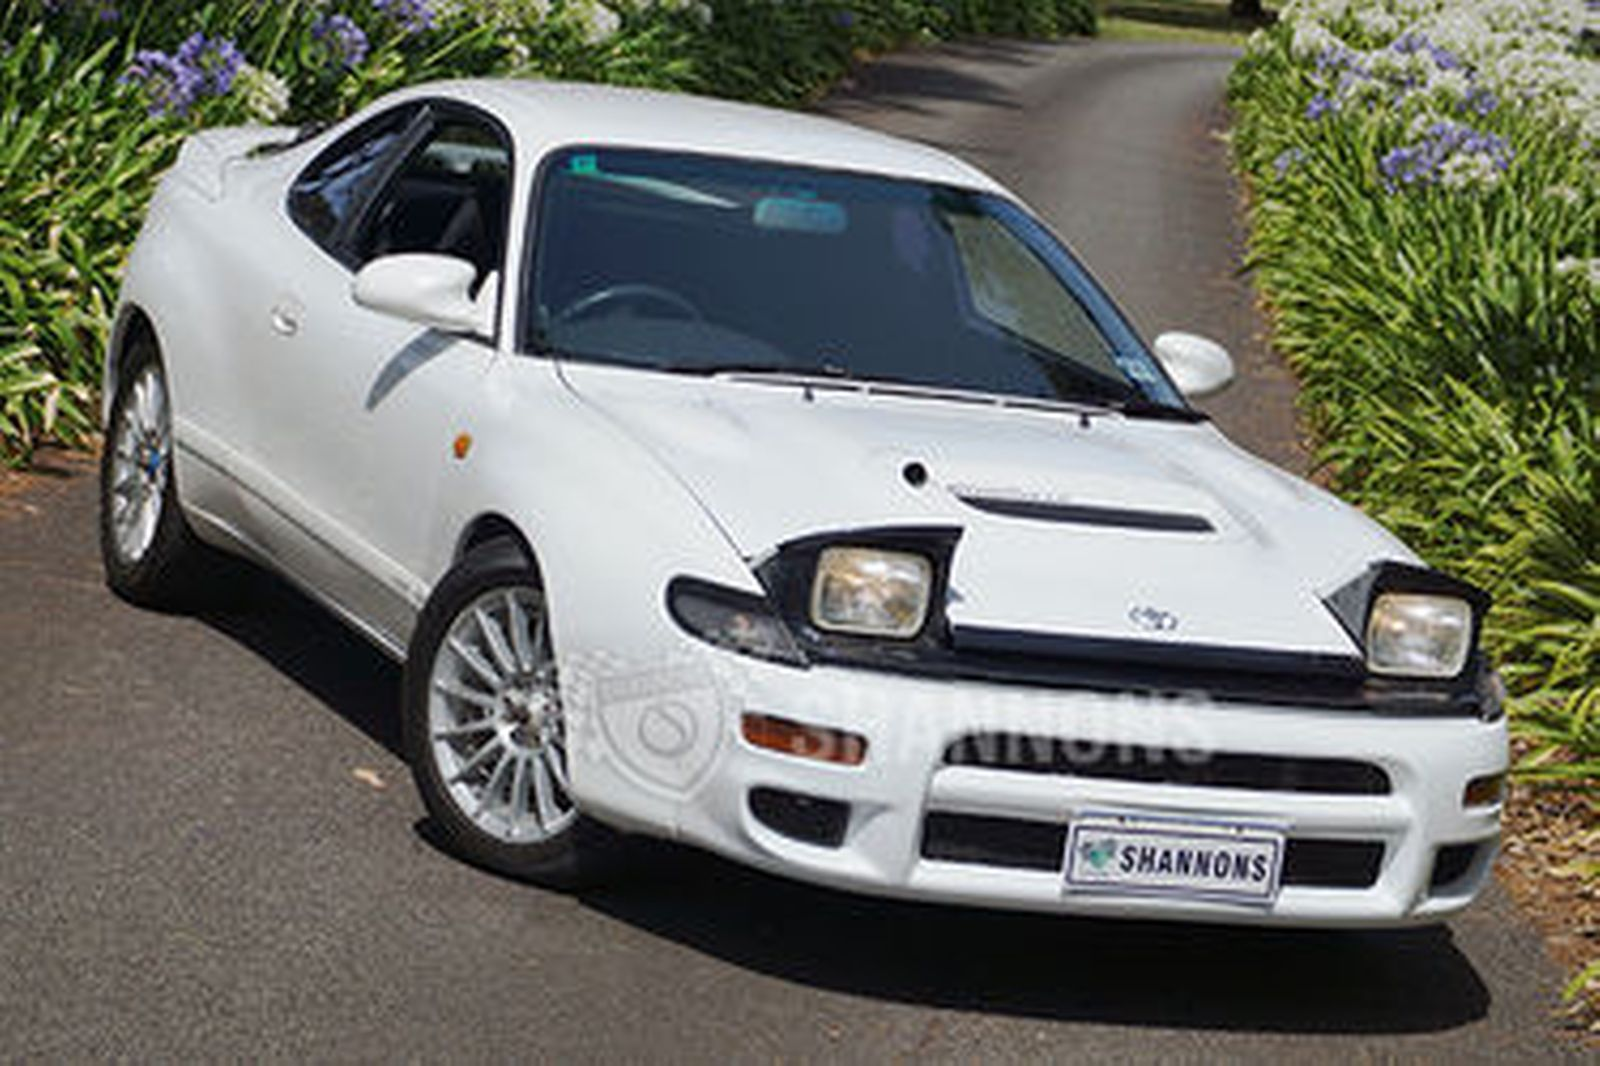 Toyota Celica GT4 Group A 4WD Coupe (Carlos Sainz Edition No.143)